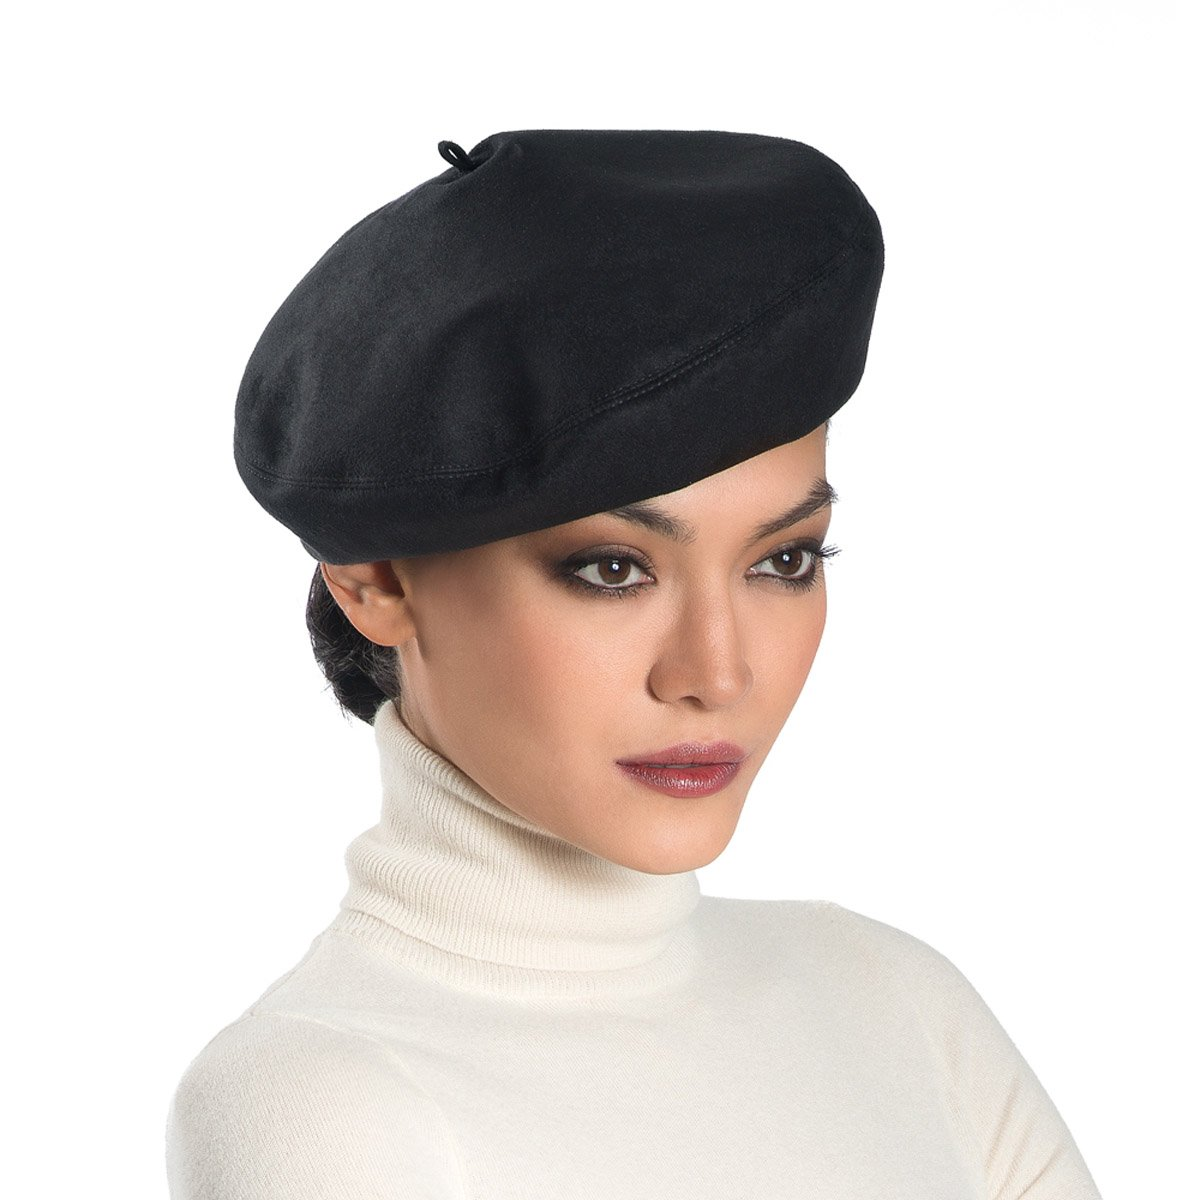 Eric Javits Luxury Fashion Designer Women's Headwear Hat - Betty - Black